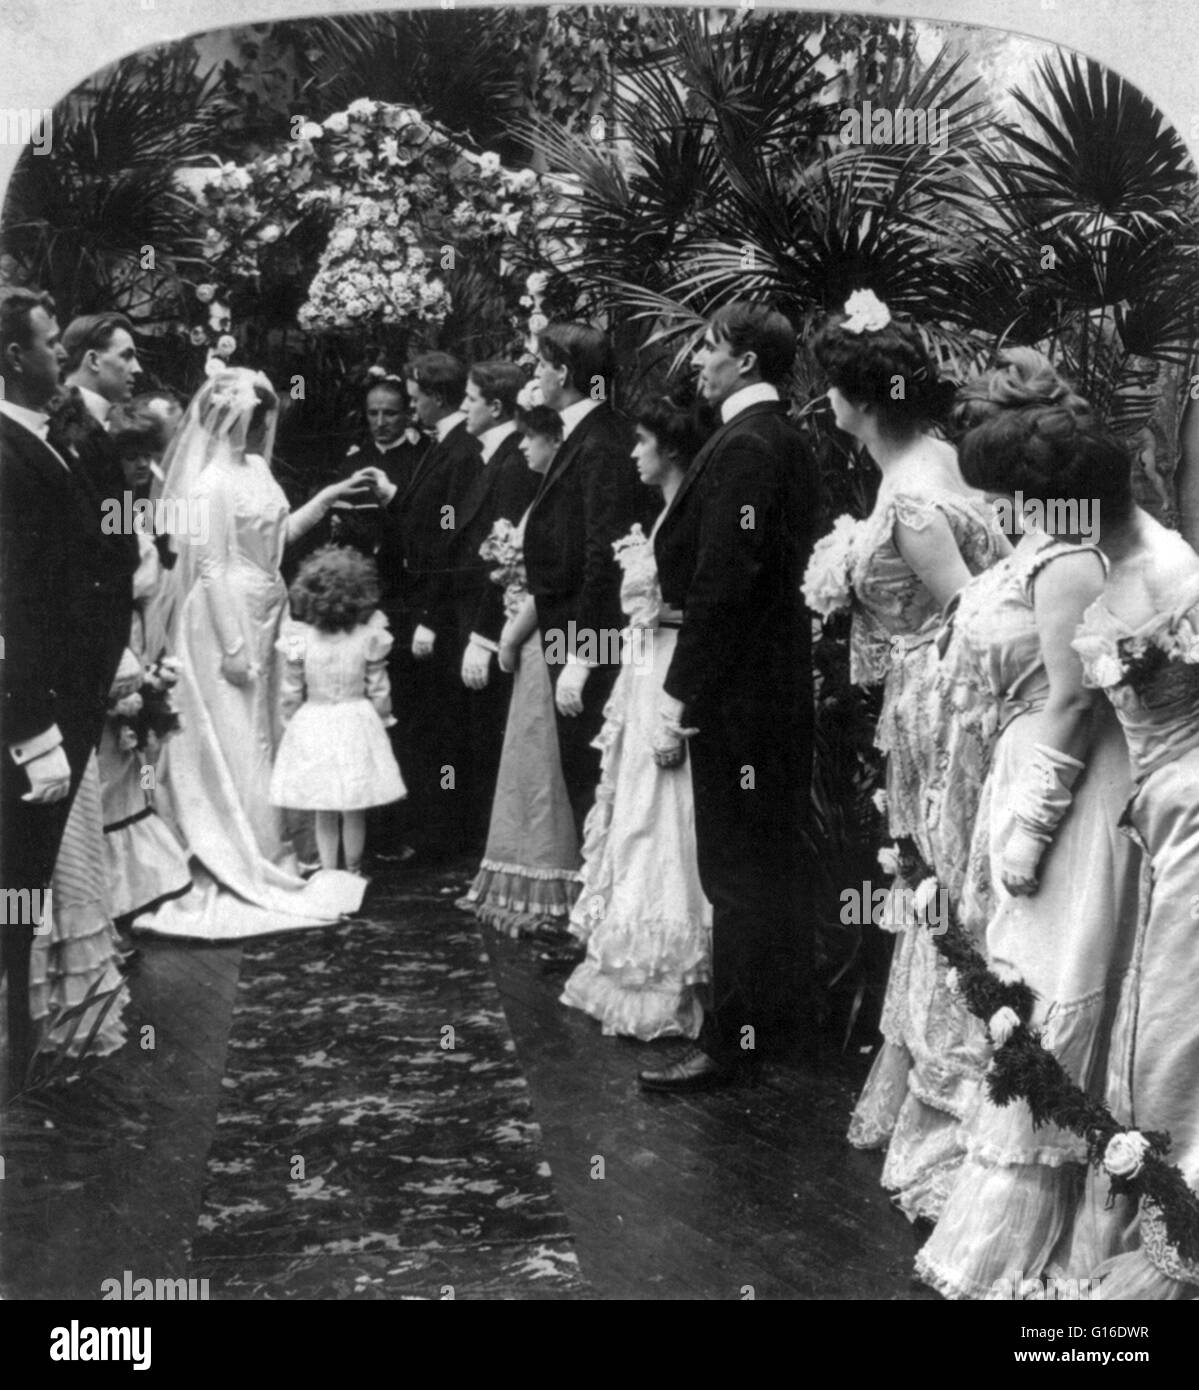 Entitled: 'With this ring I thee wed' shows a wedding scene with members of wedding party in foreground; - Stock Image